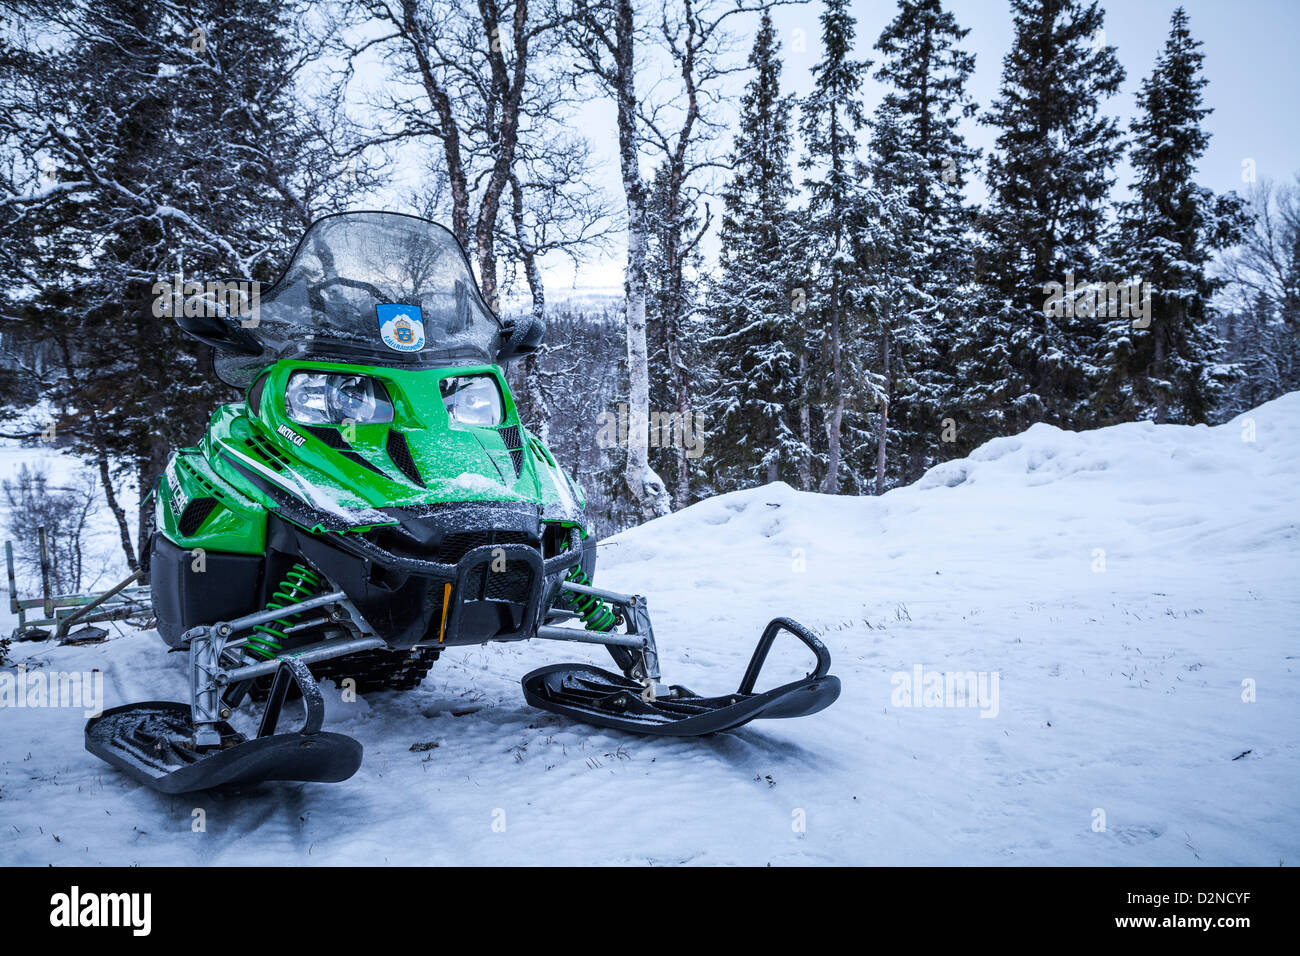 Snowmobile with snow-covered trees in the background, Sweden - Stock Image